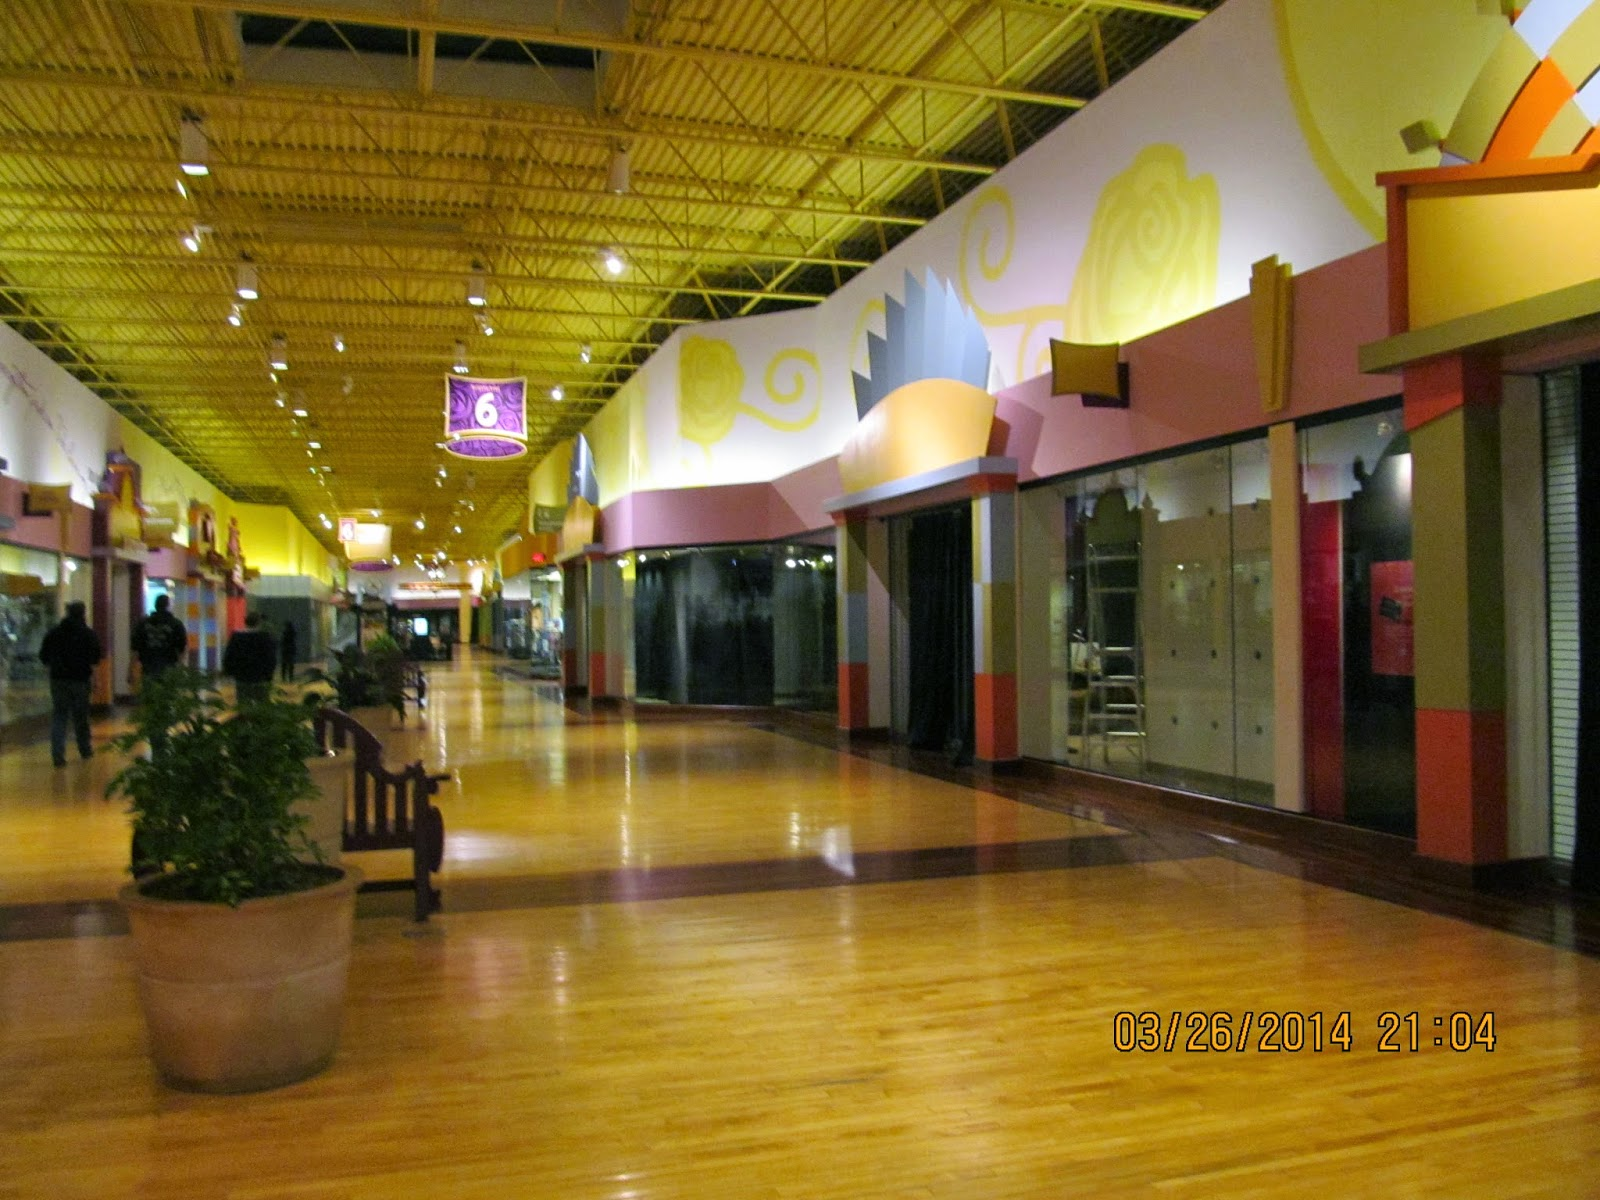 St. Louis Outlet Mall is located in Hazelwood, Missouri and offers stores - Scroll down for St. Louis Outlet Mall outlet shopping information: store list, locations, outlet mall hours, contact and address.3/5(4).